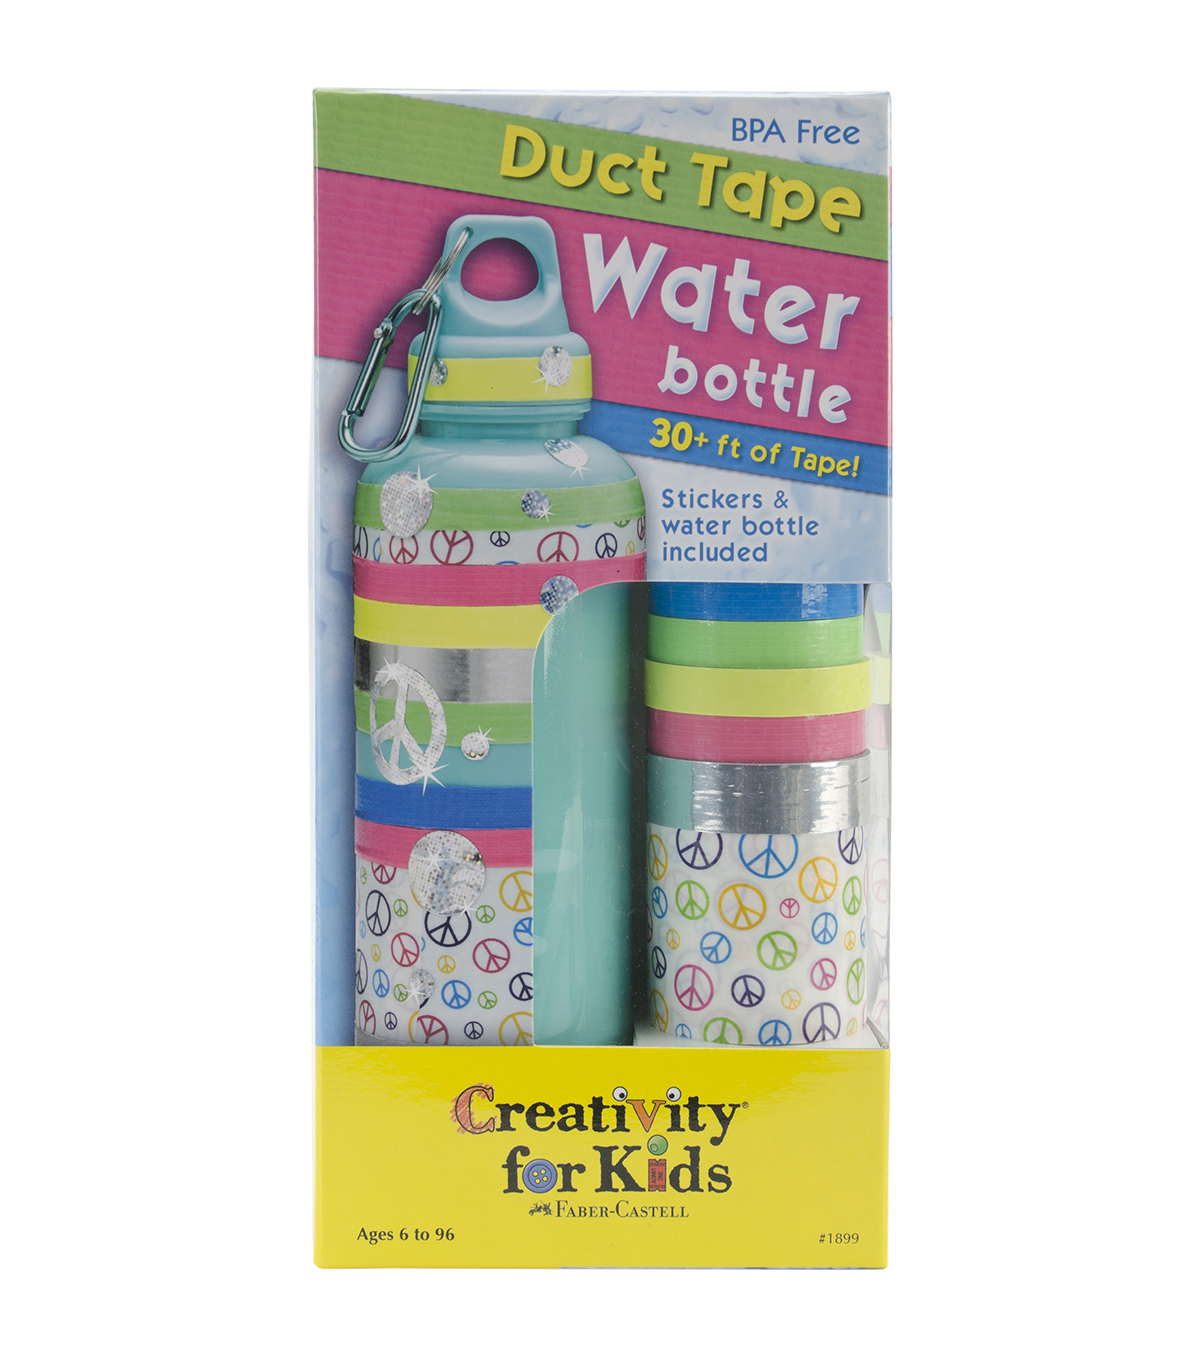 Creativity For Kids Duct Tape Water Bottle Kit